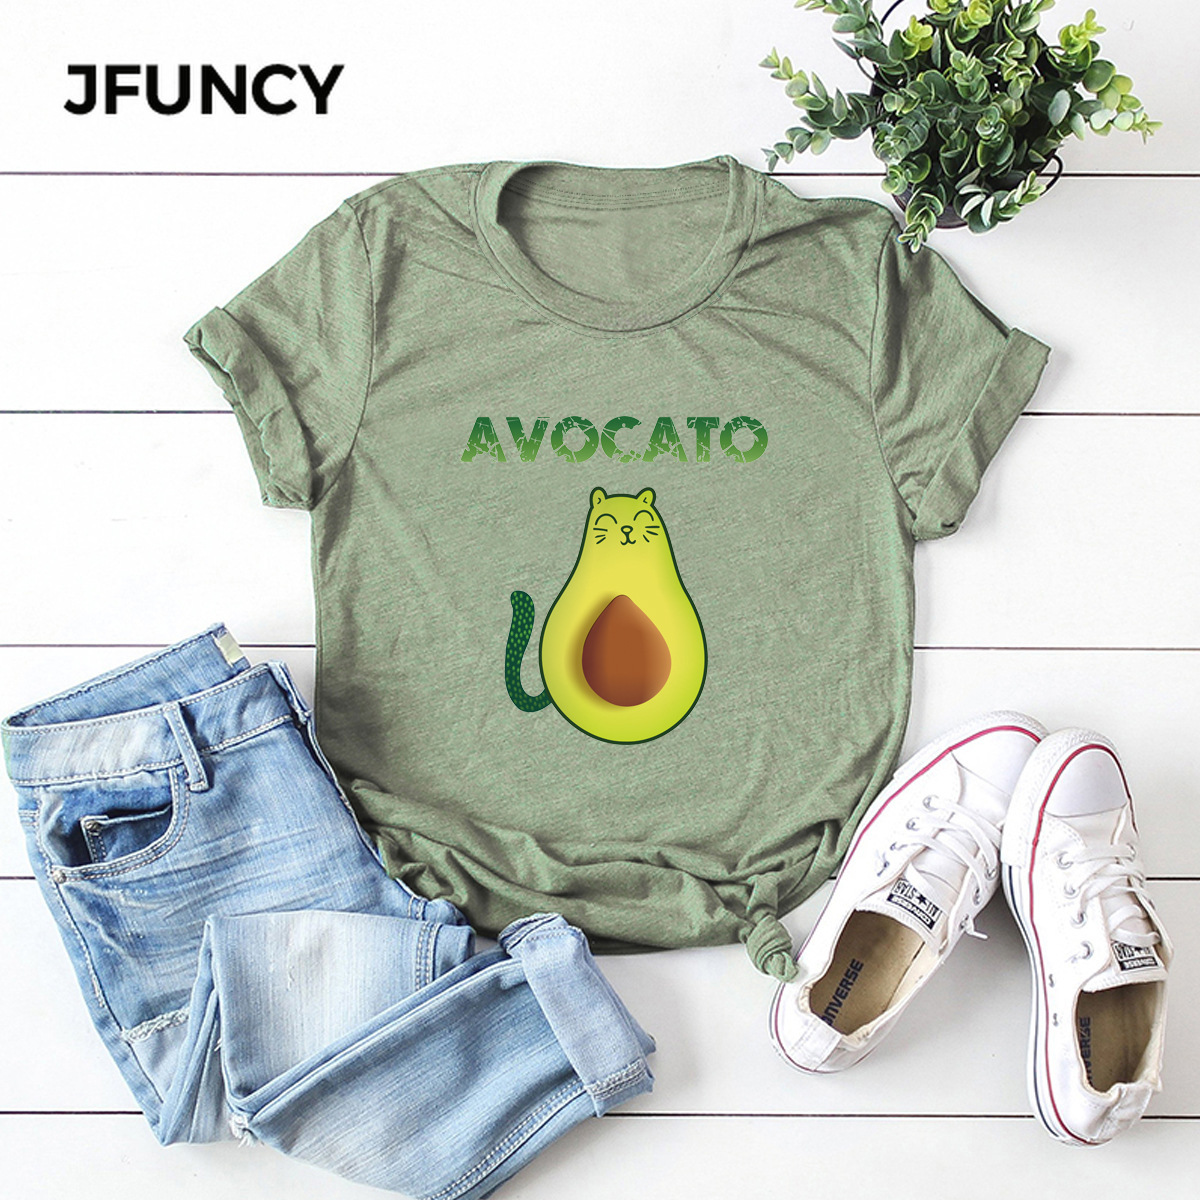 JFUNCY Cute Avocado Cat Print Oversize Women Loose Tee Tops 100% Cotton Summer T-Shirt Woman Shirts Fashion Kawaii Mujer Tshirt